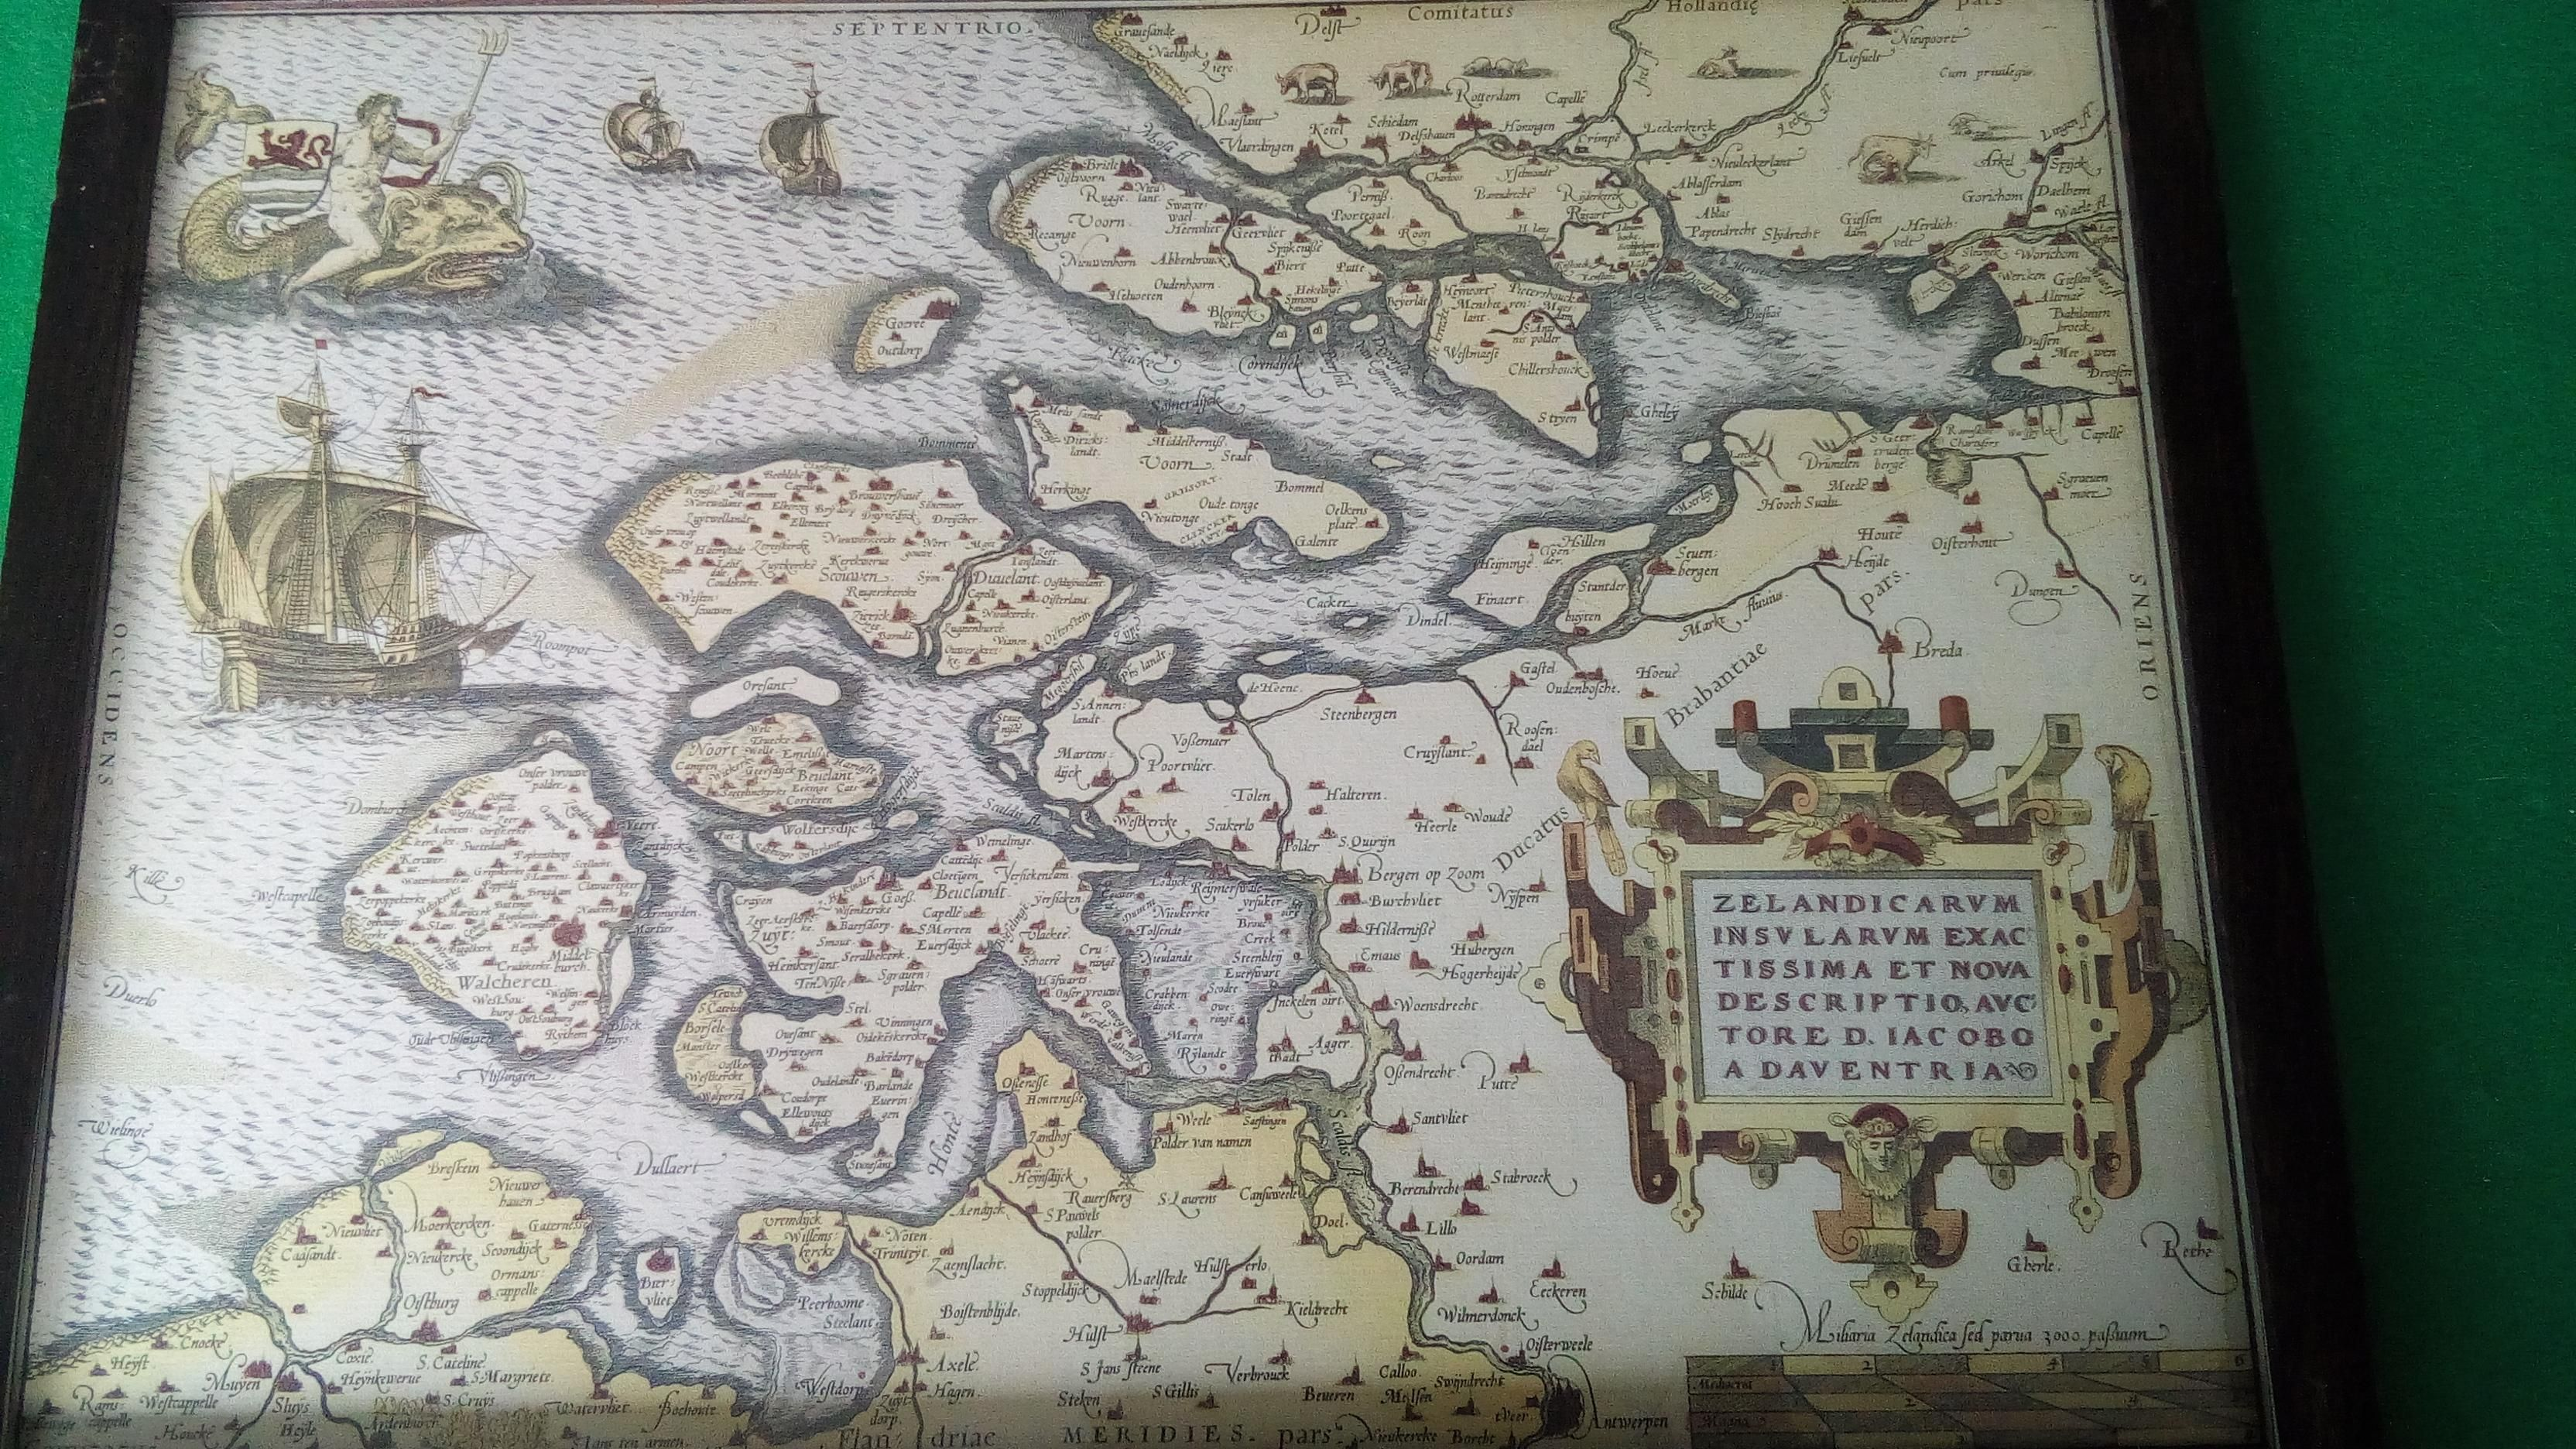 Map of Zeeland the Netherlands in 1580 highres version in